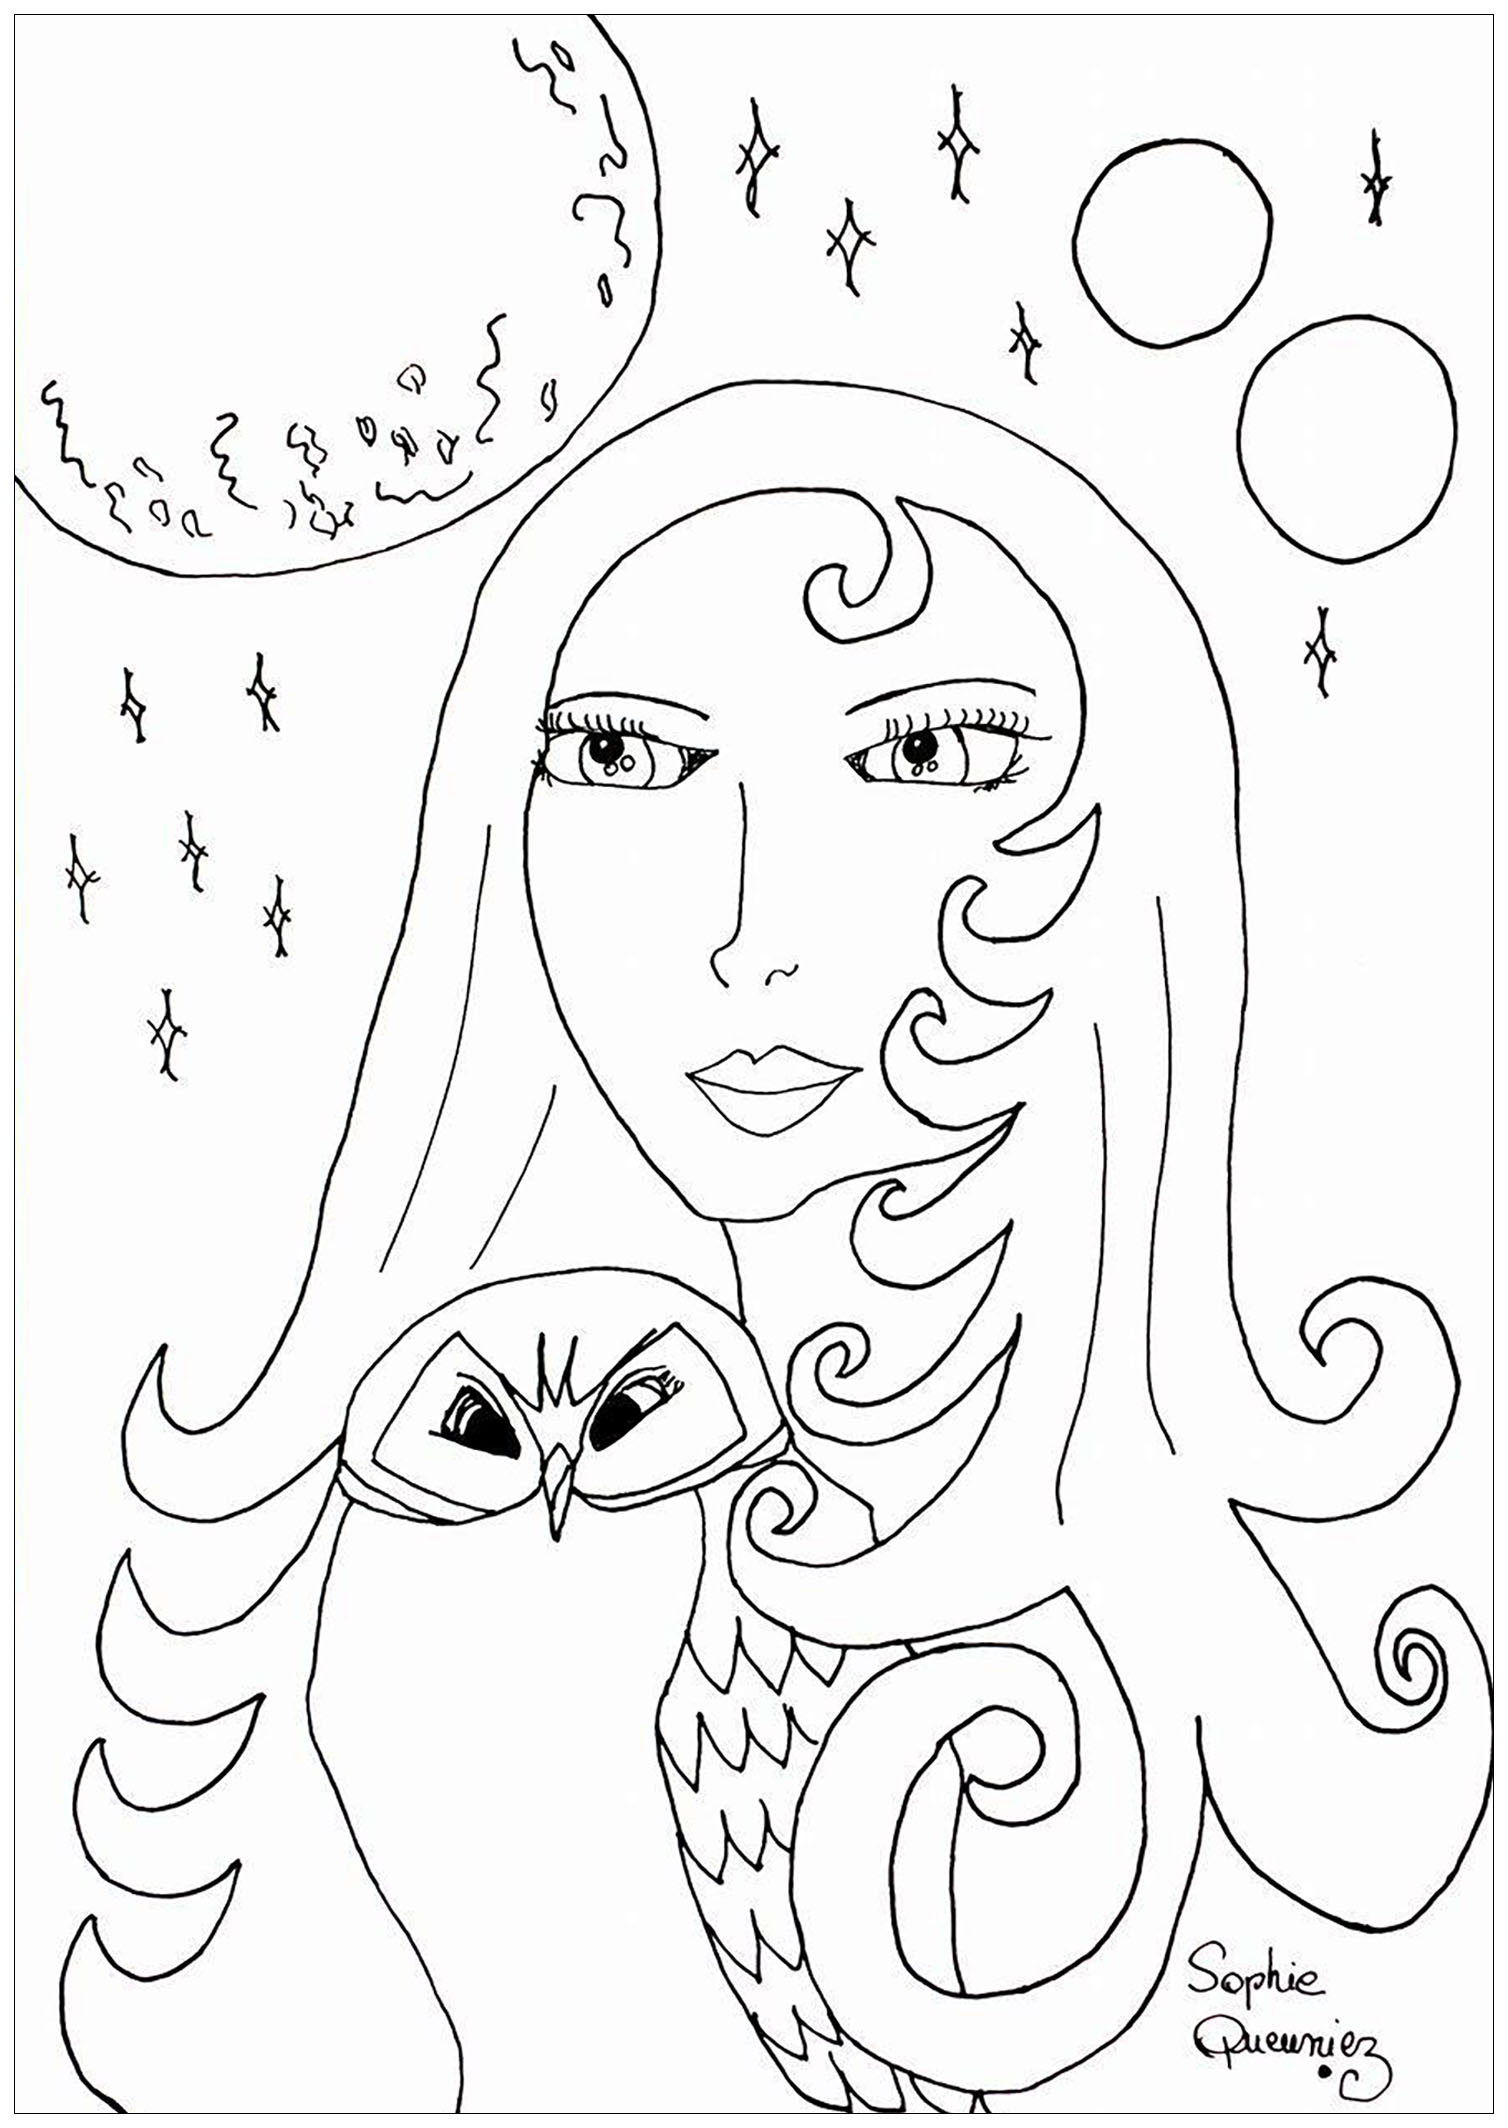 Coloring adult full moon and owl